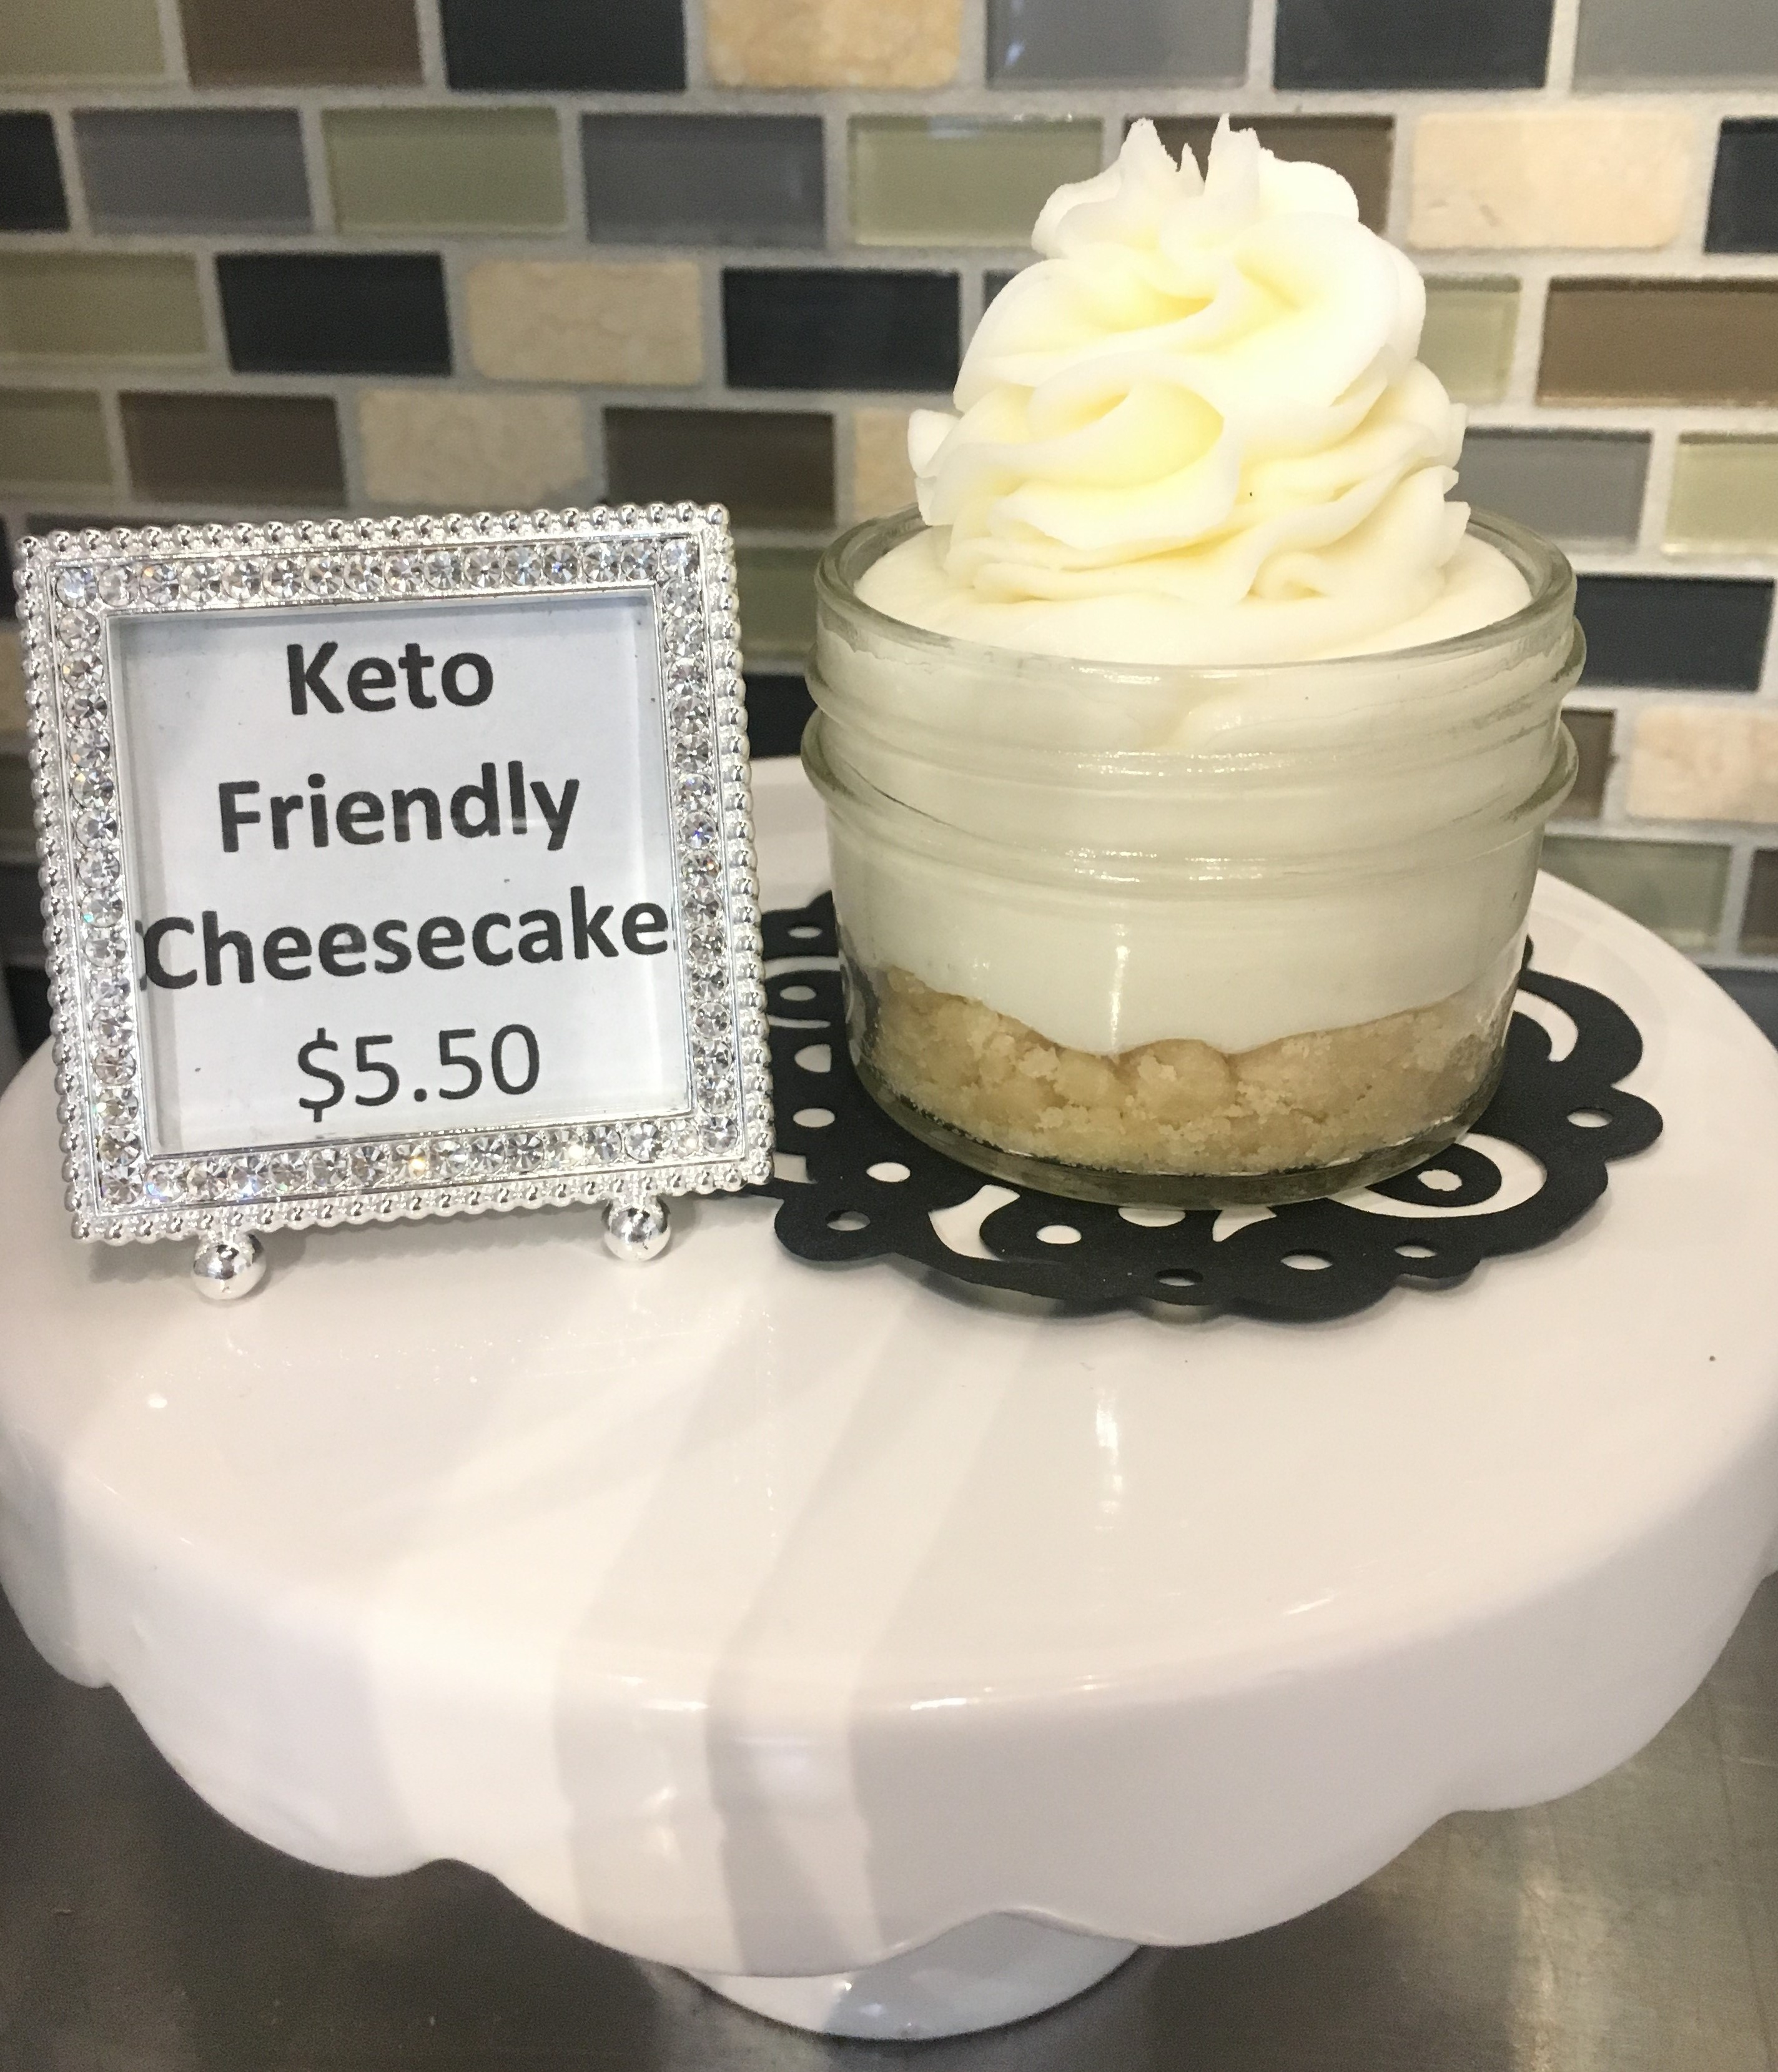 Keto-Friendly Cheesecake